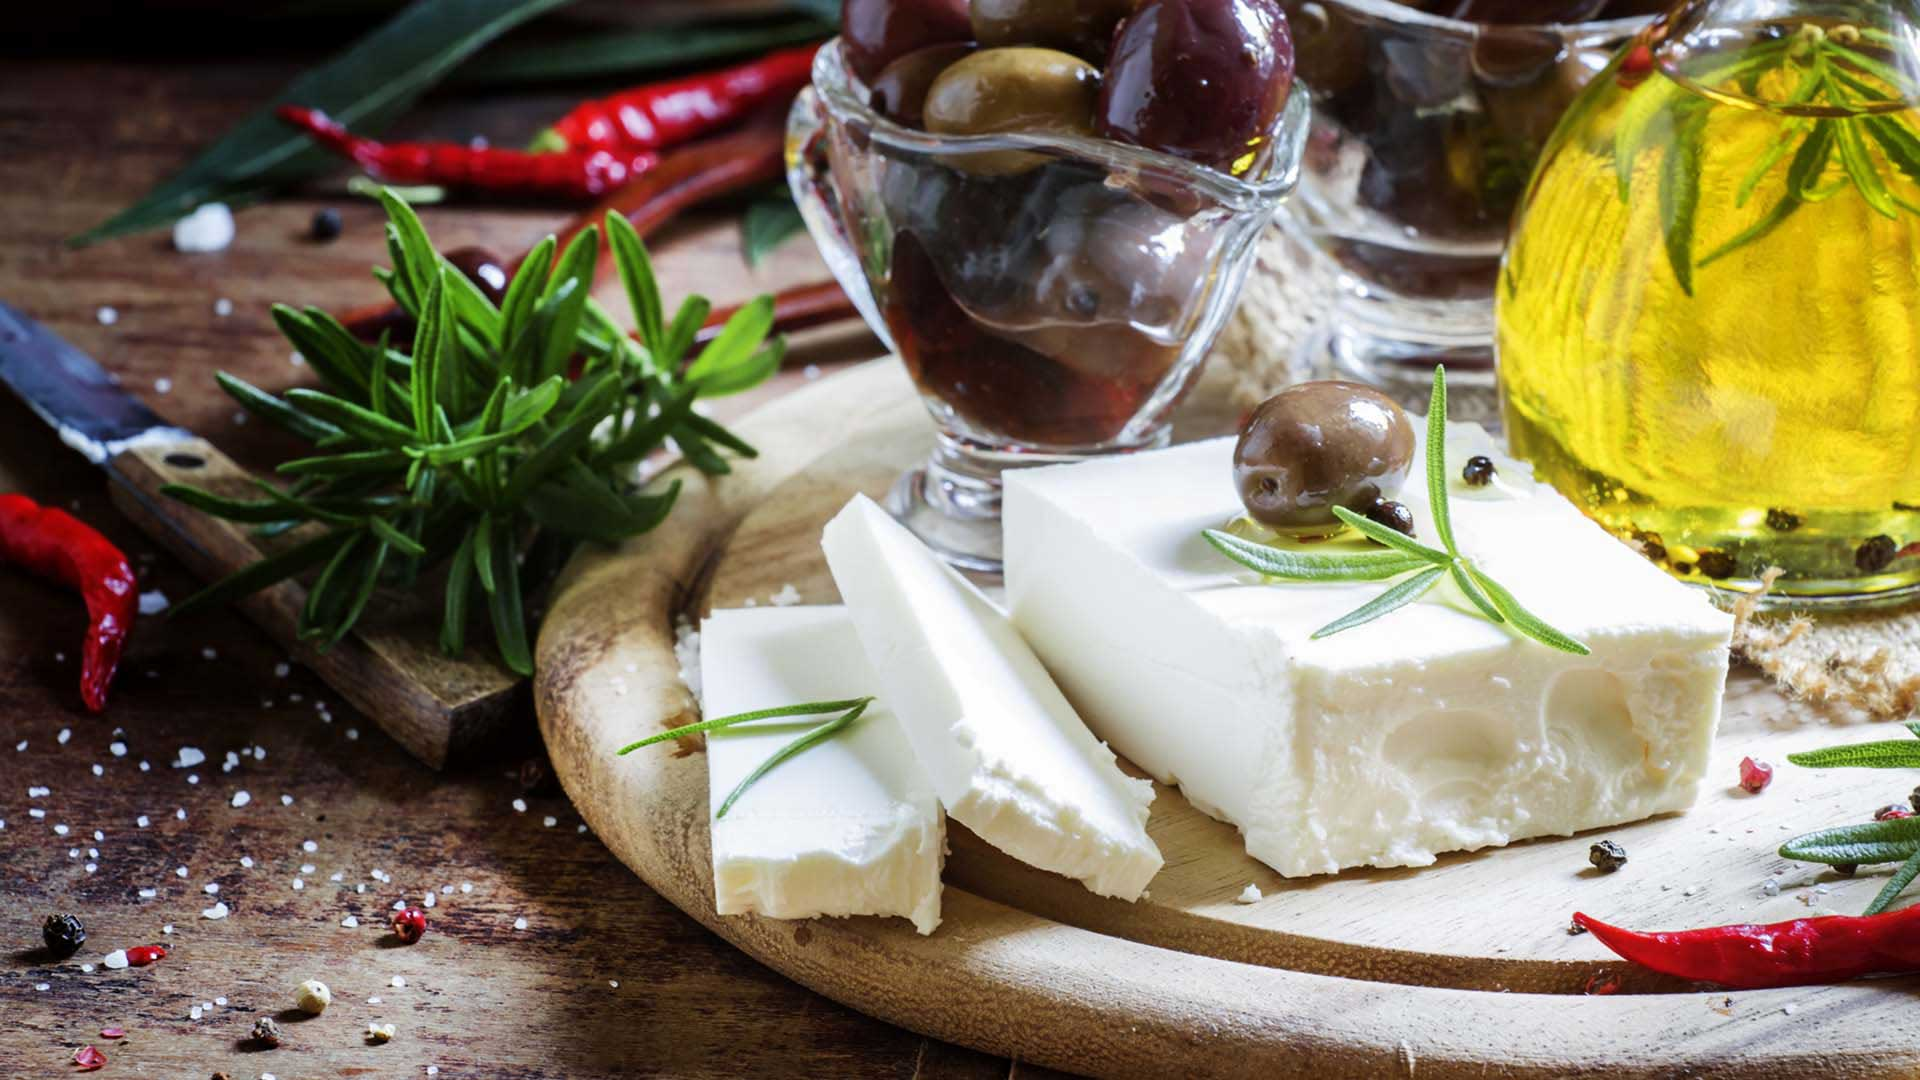 Feta Cheese and Olive Oil